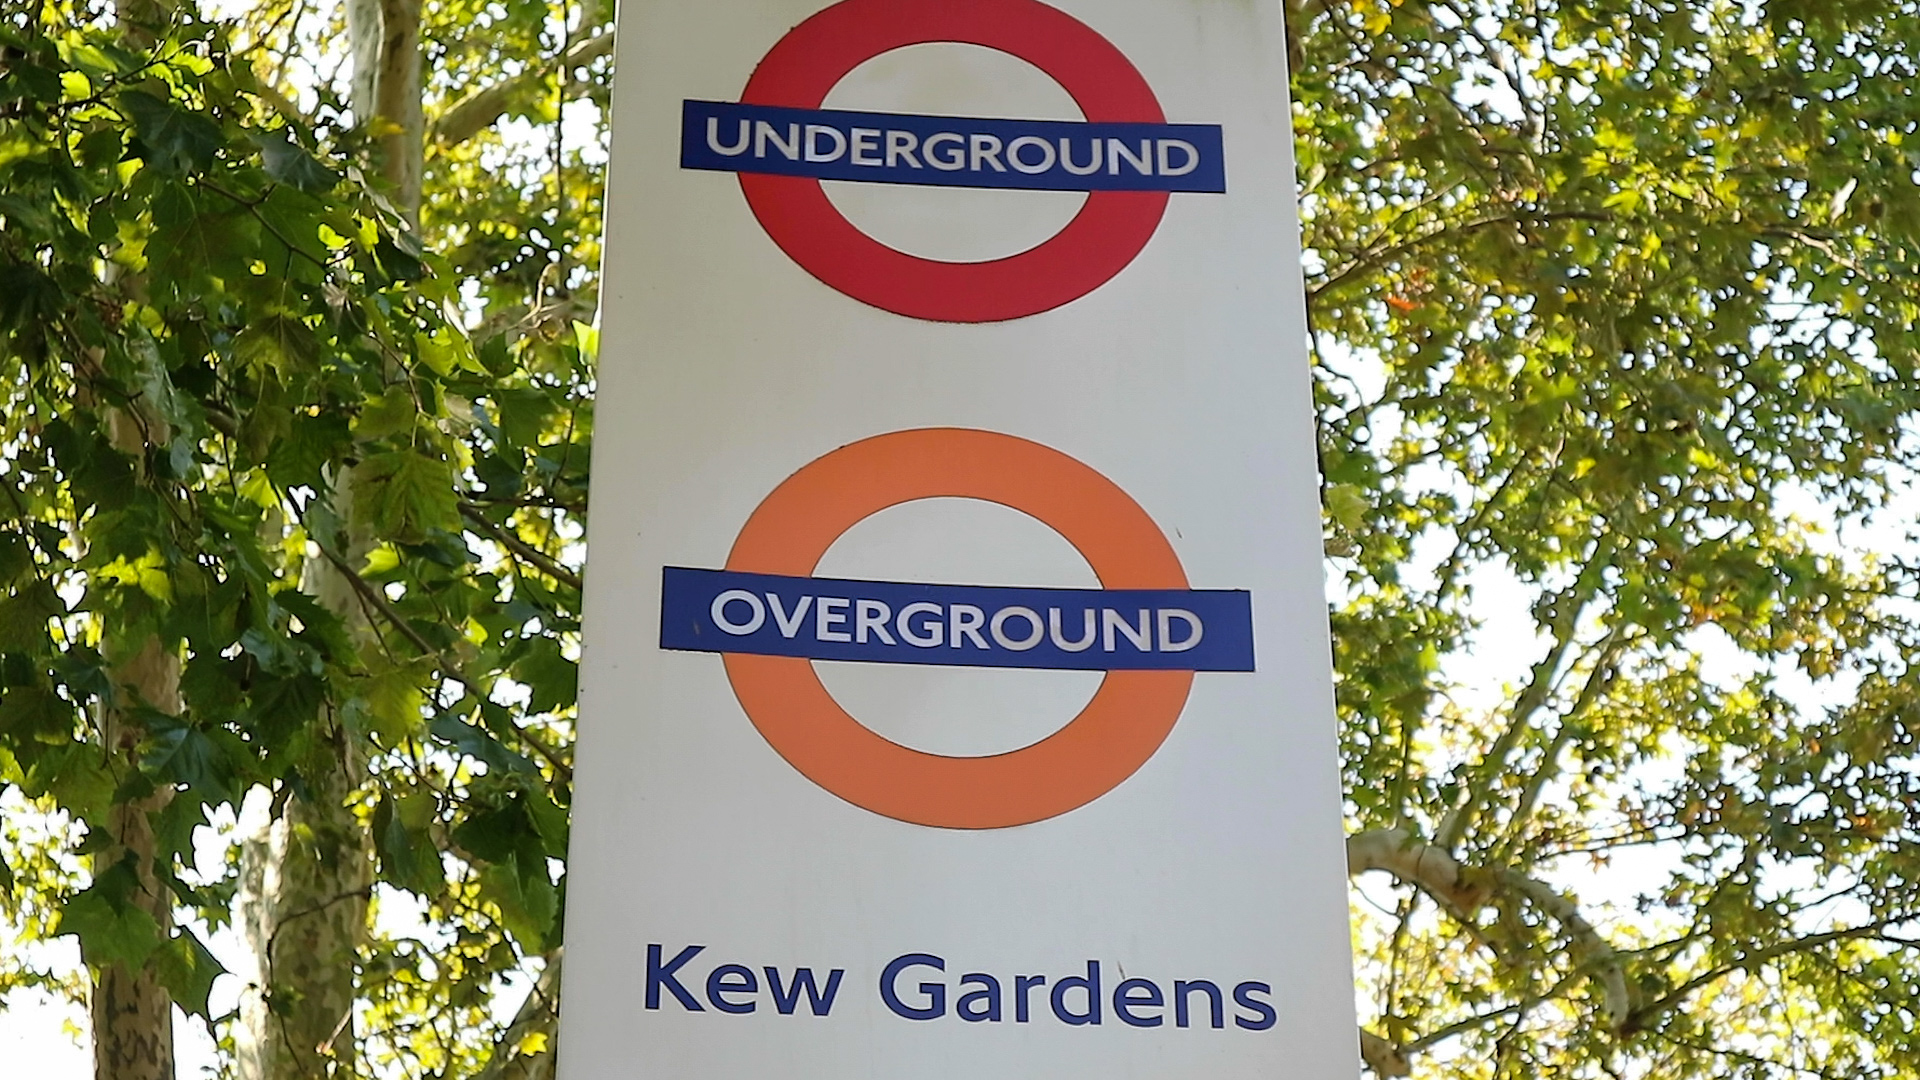 A sign showing the Kew Gardens Stop of the London Underground